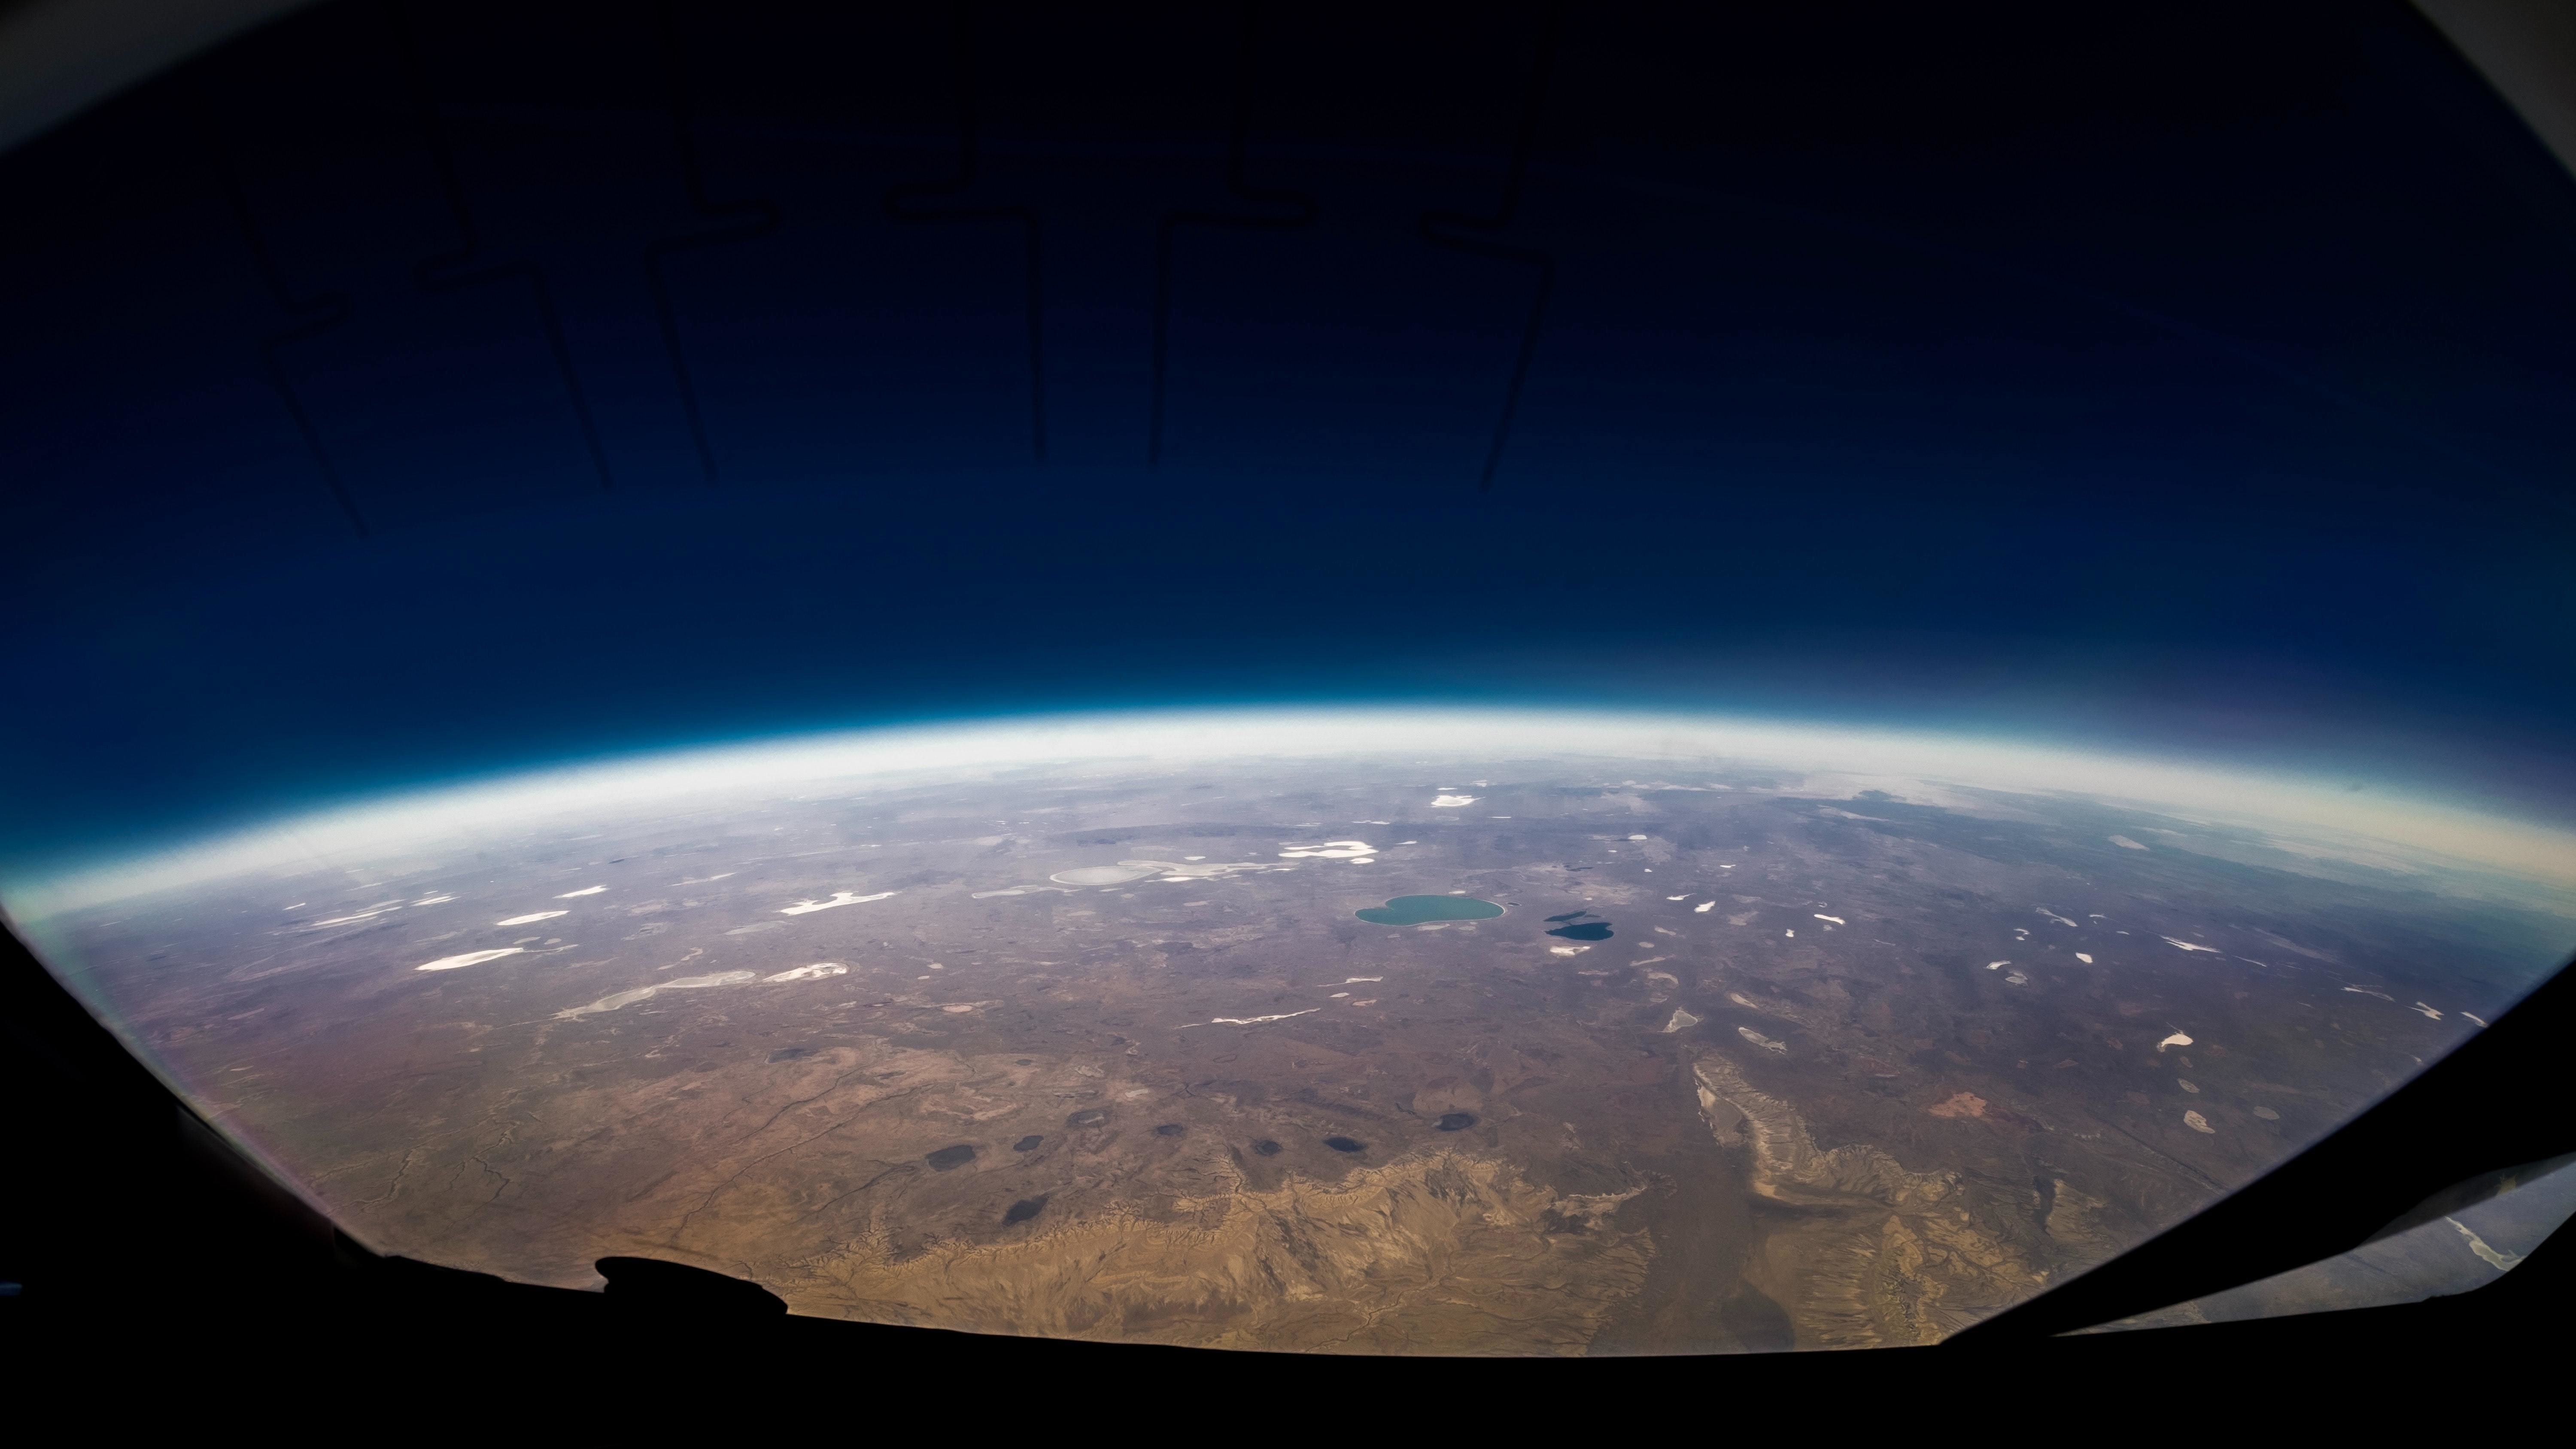 this part of Earth is shown here from space at a high altitude